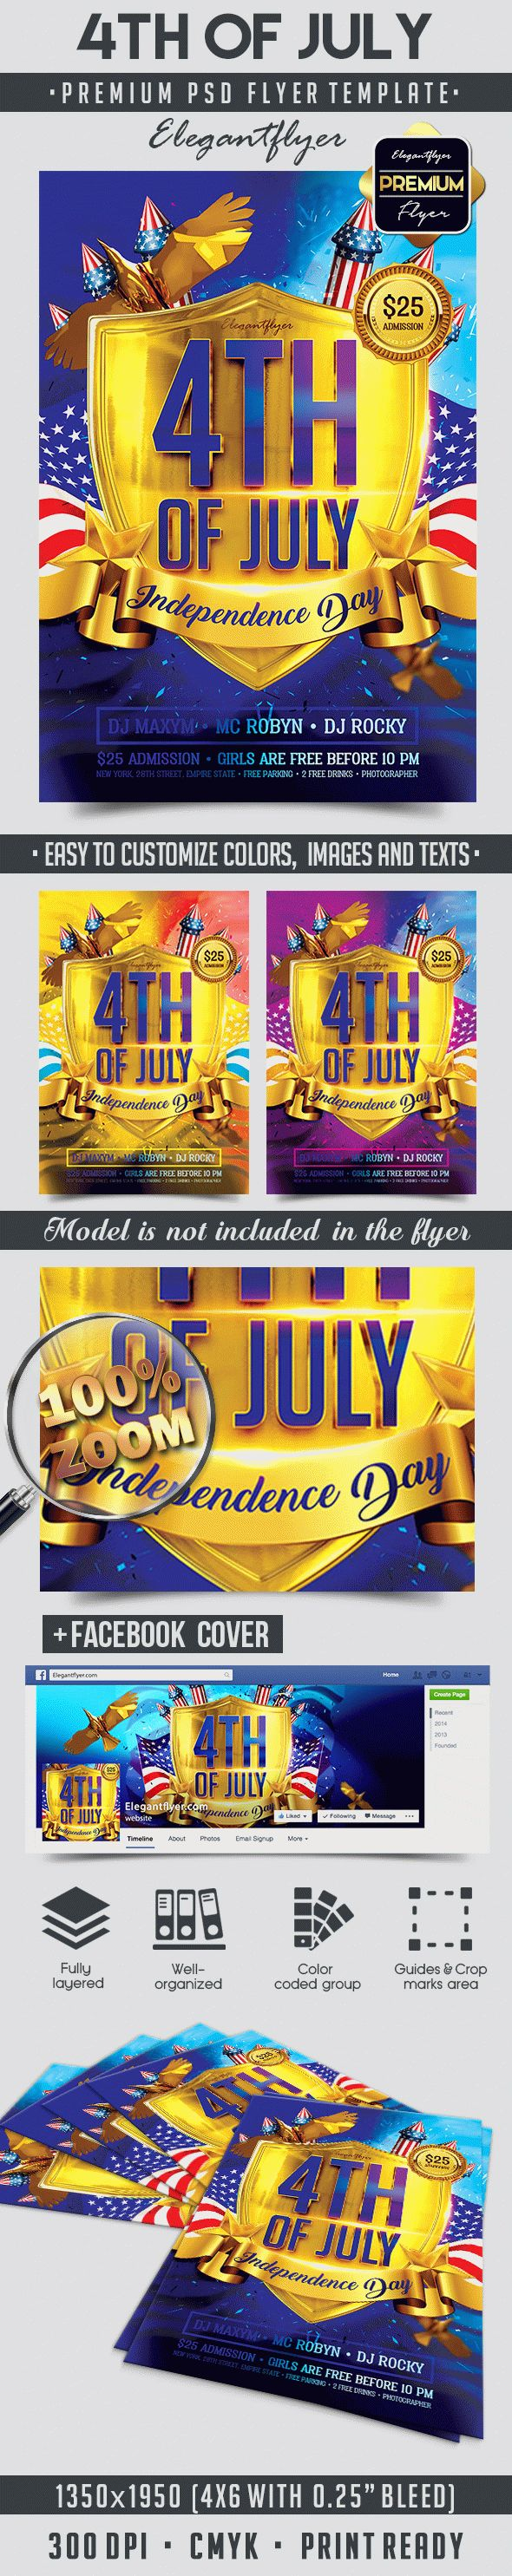 4th of July Independence Day PSD Template